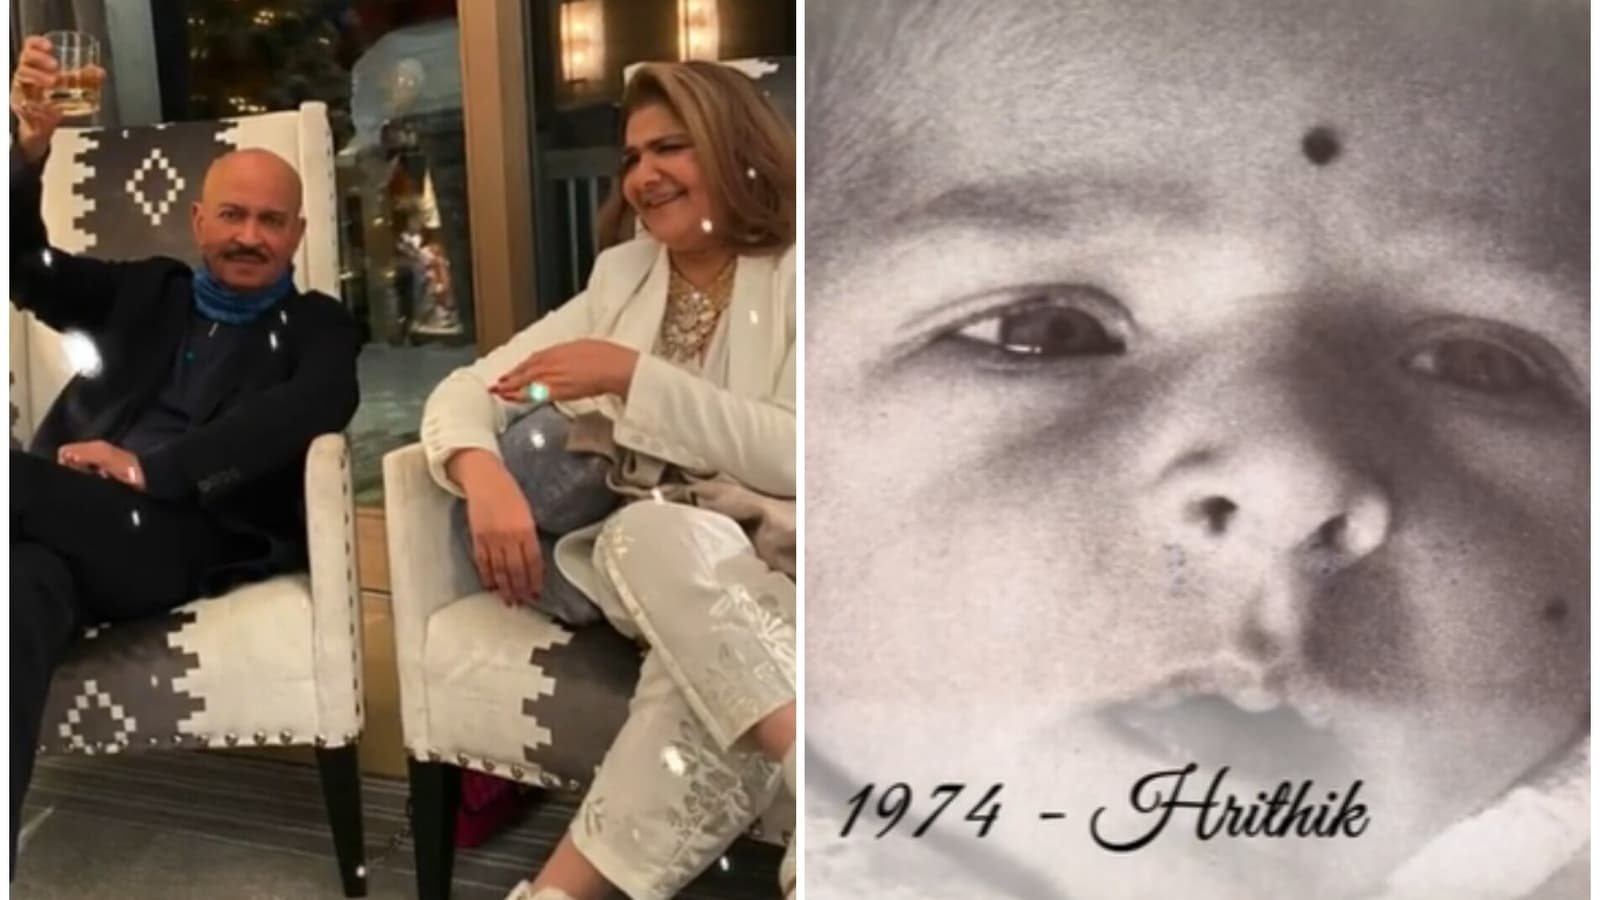 Baby Hrithik Roshan features in mom Pinkie's video to mark 50th wedding anniversary, Sussanne Khan has a special wish - Hindustan Times